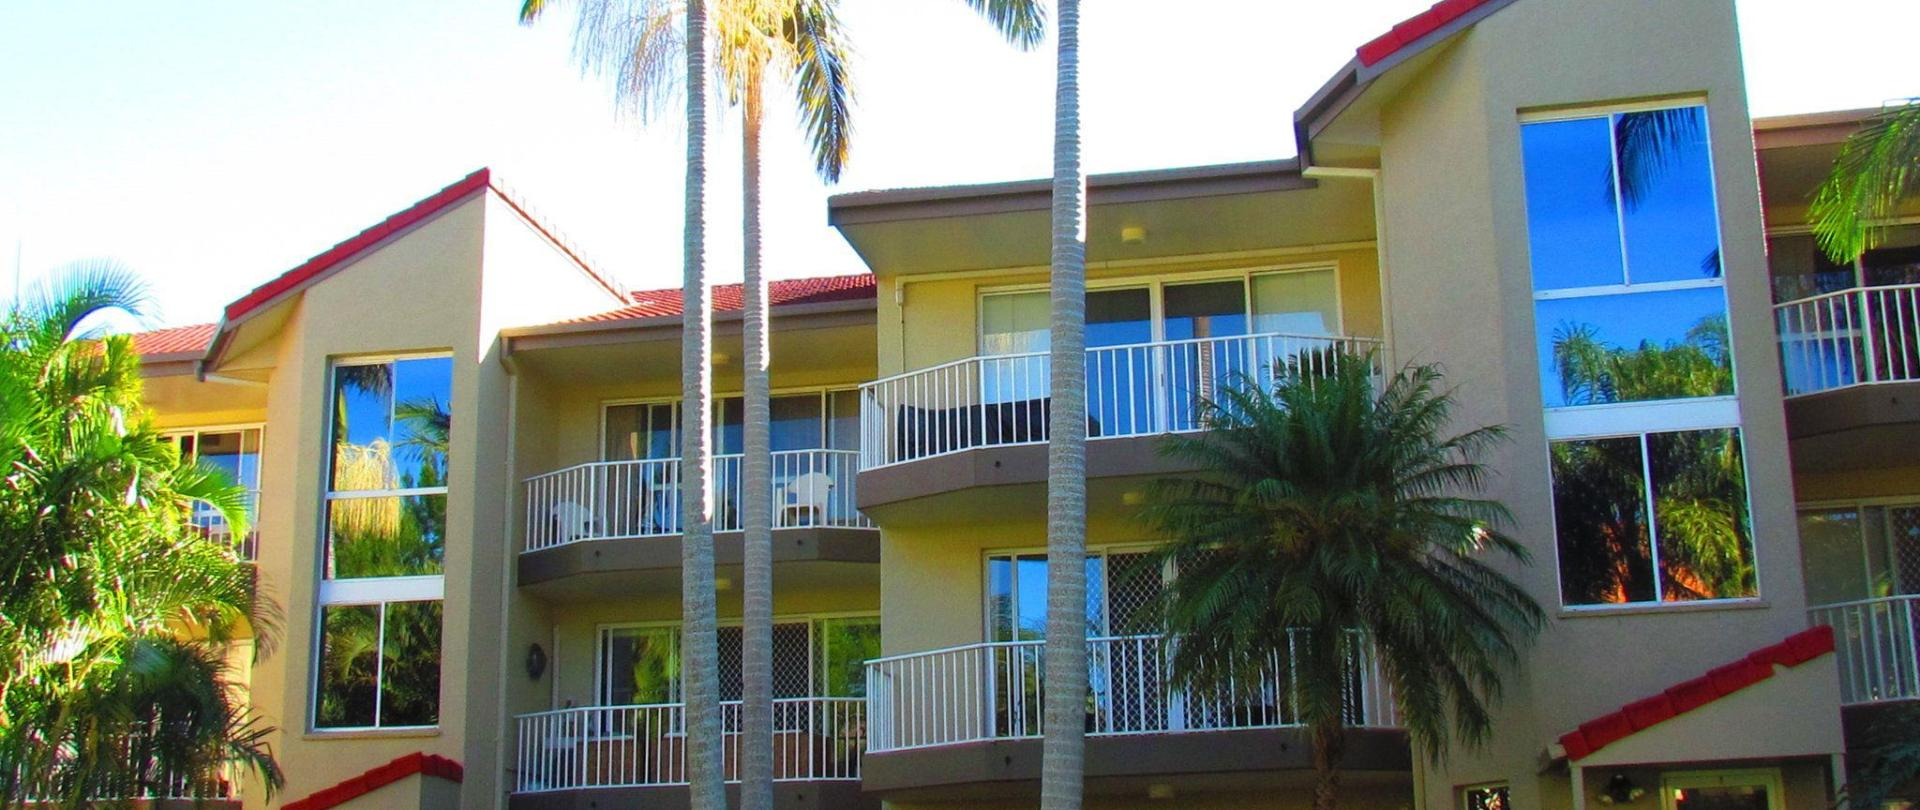 Bayview Waters Apartments - Goldküste - Australien